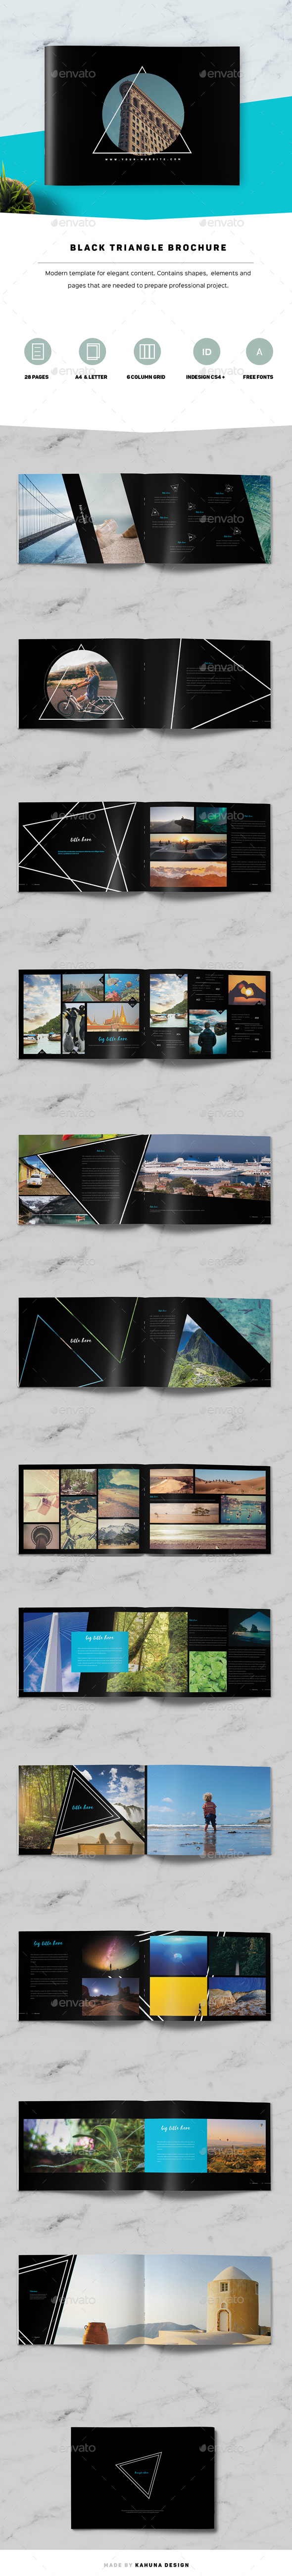 Black Triangle Brochure - Portfolio Brochures